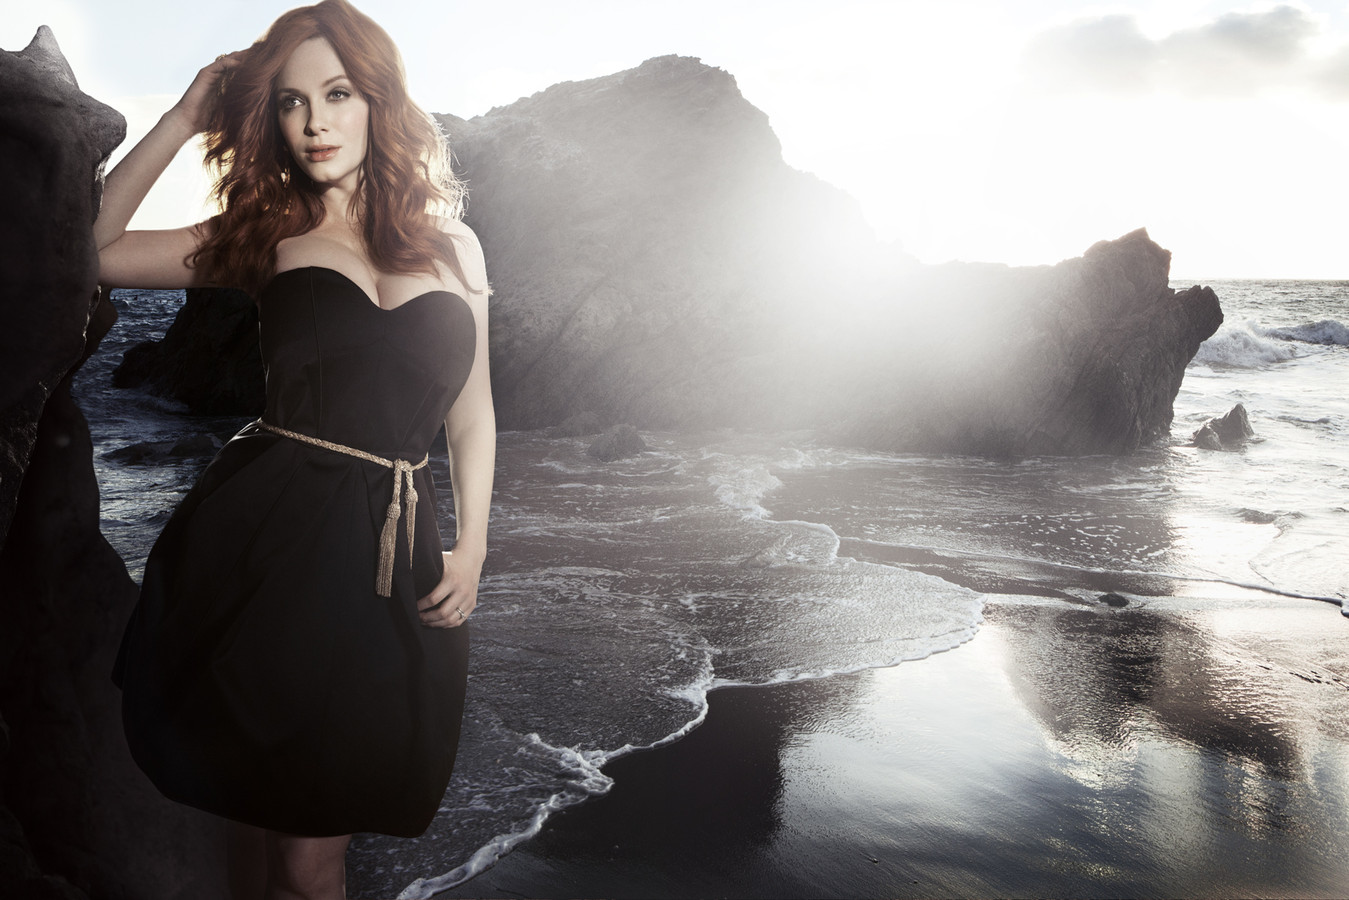 Christina Hendricks Beautiful Fresh Hot Hd Wallpaper 2014 1349x900